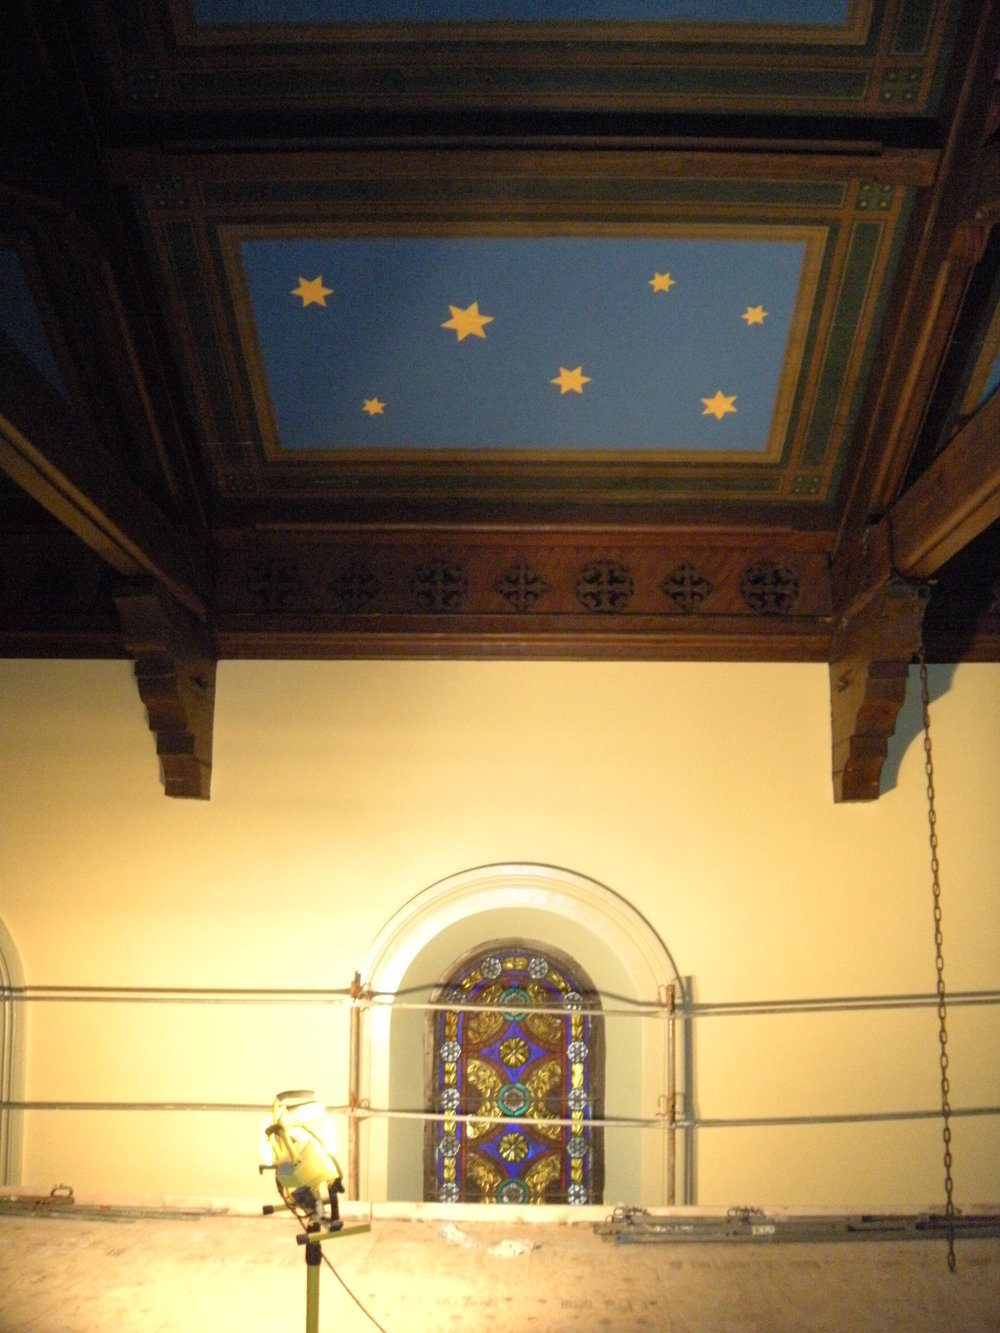 St. Paul's Episcopal Church, during renovation